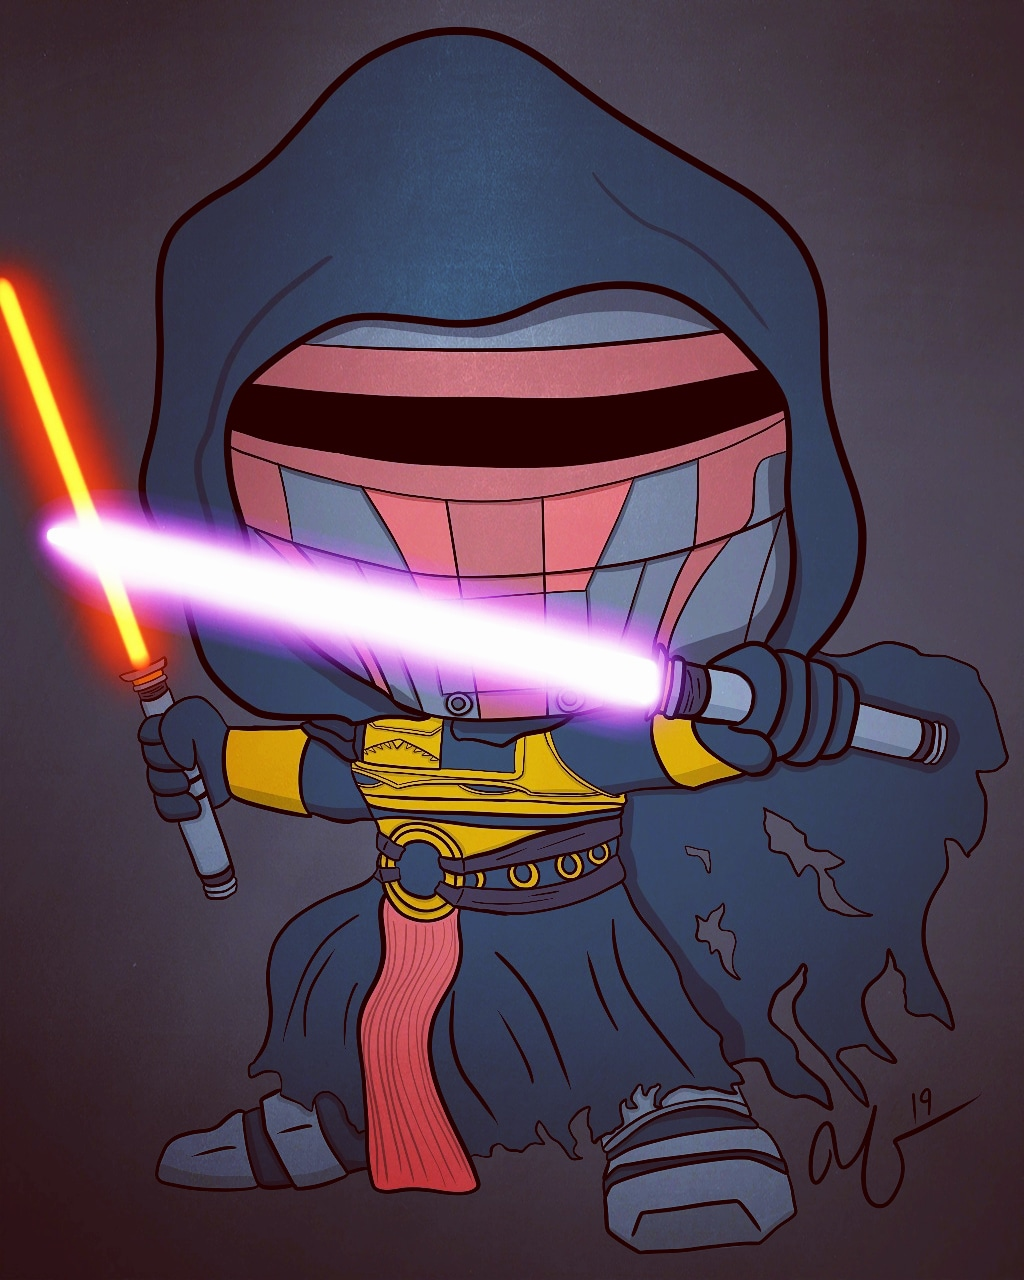 Was commissioned to draw Darth Revan as a funko pop. Figured you guys might get a kick out of it.